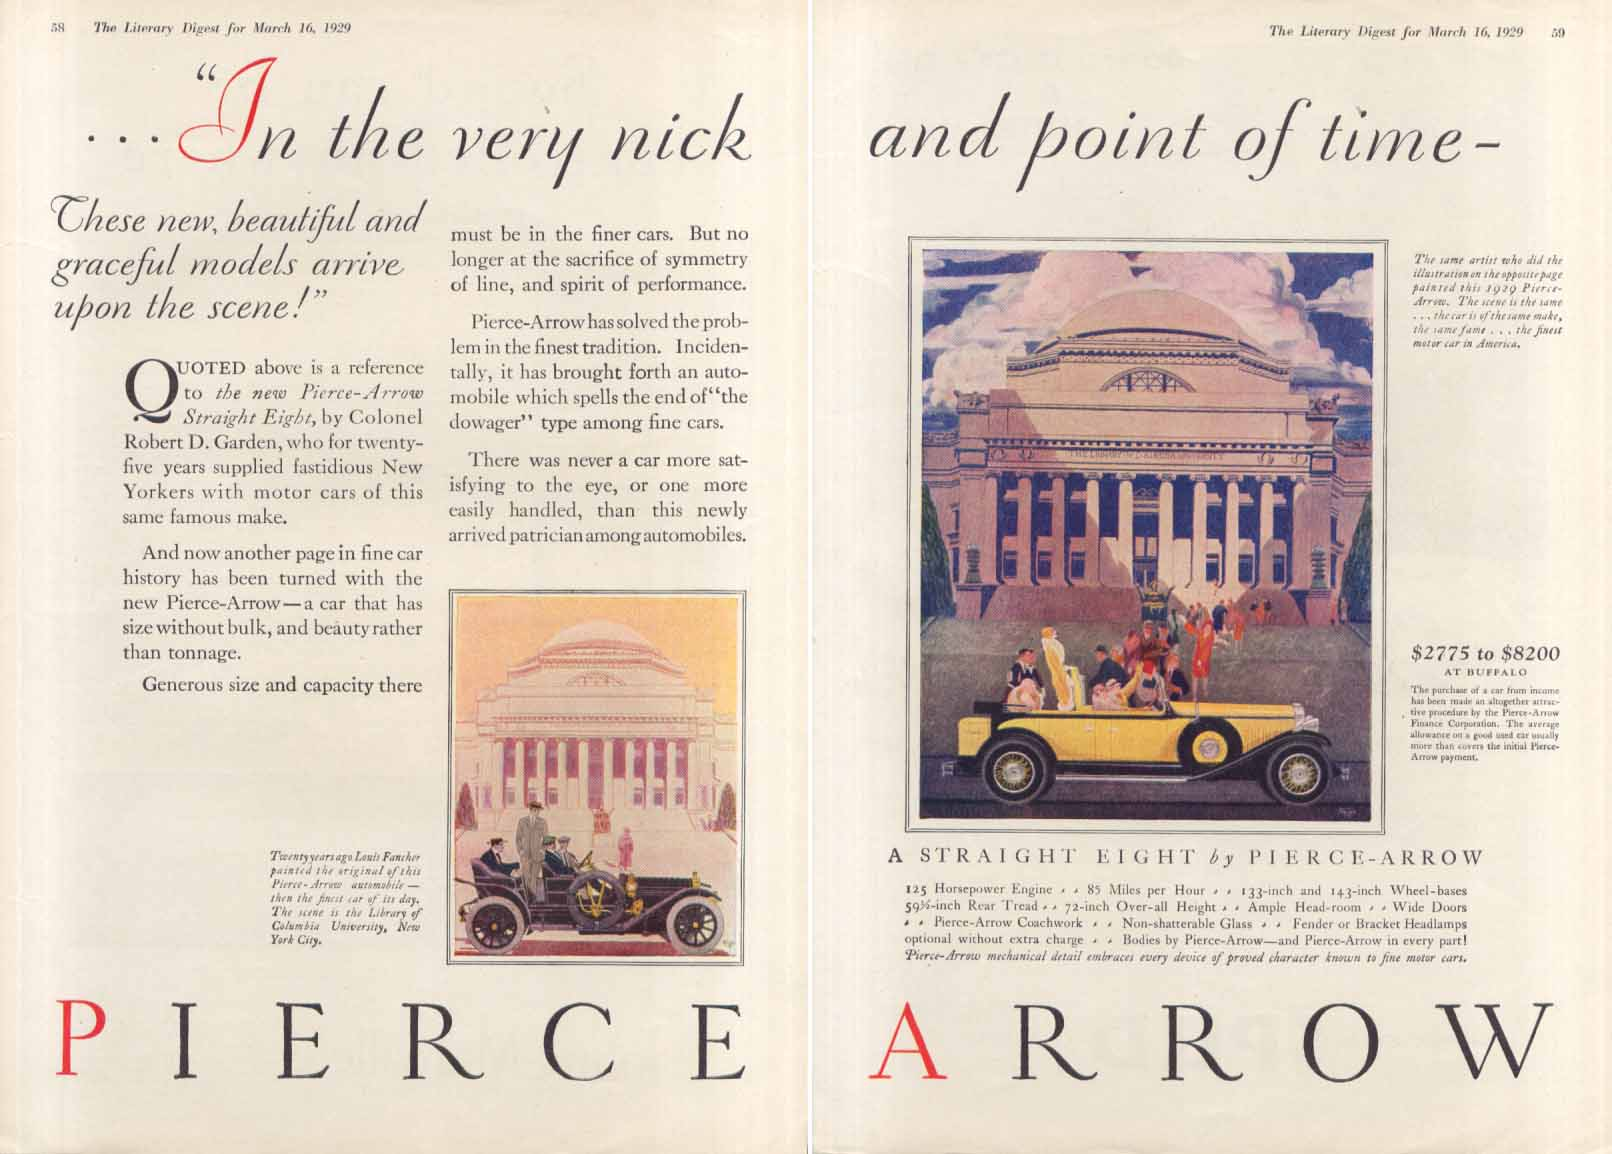 In the very nick & point of time Pierce-Arrow ad 1929